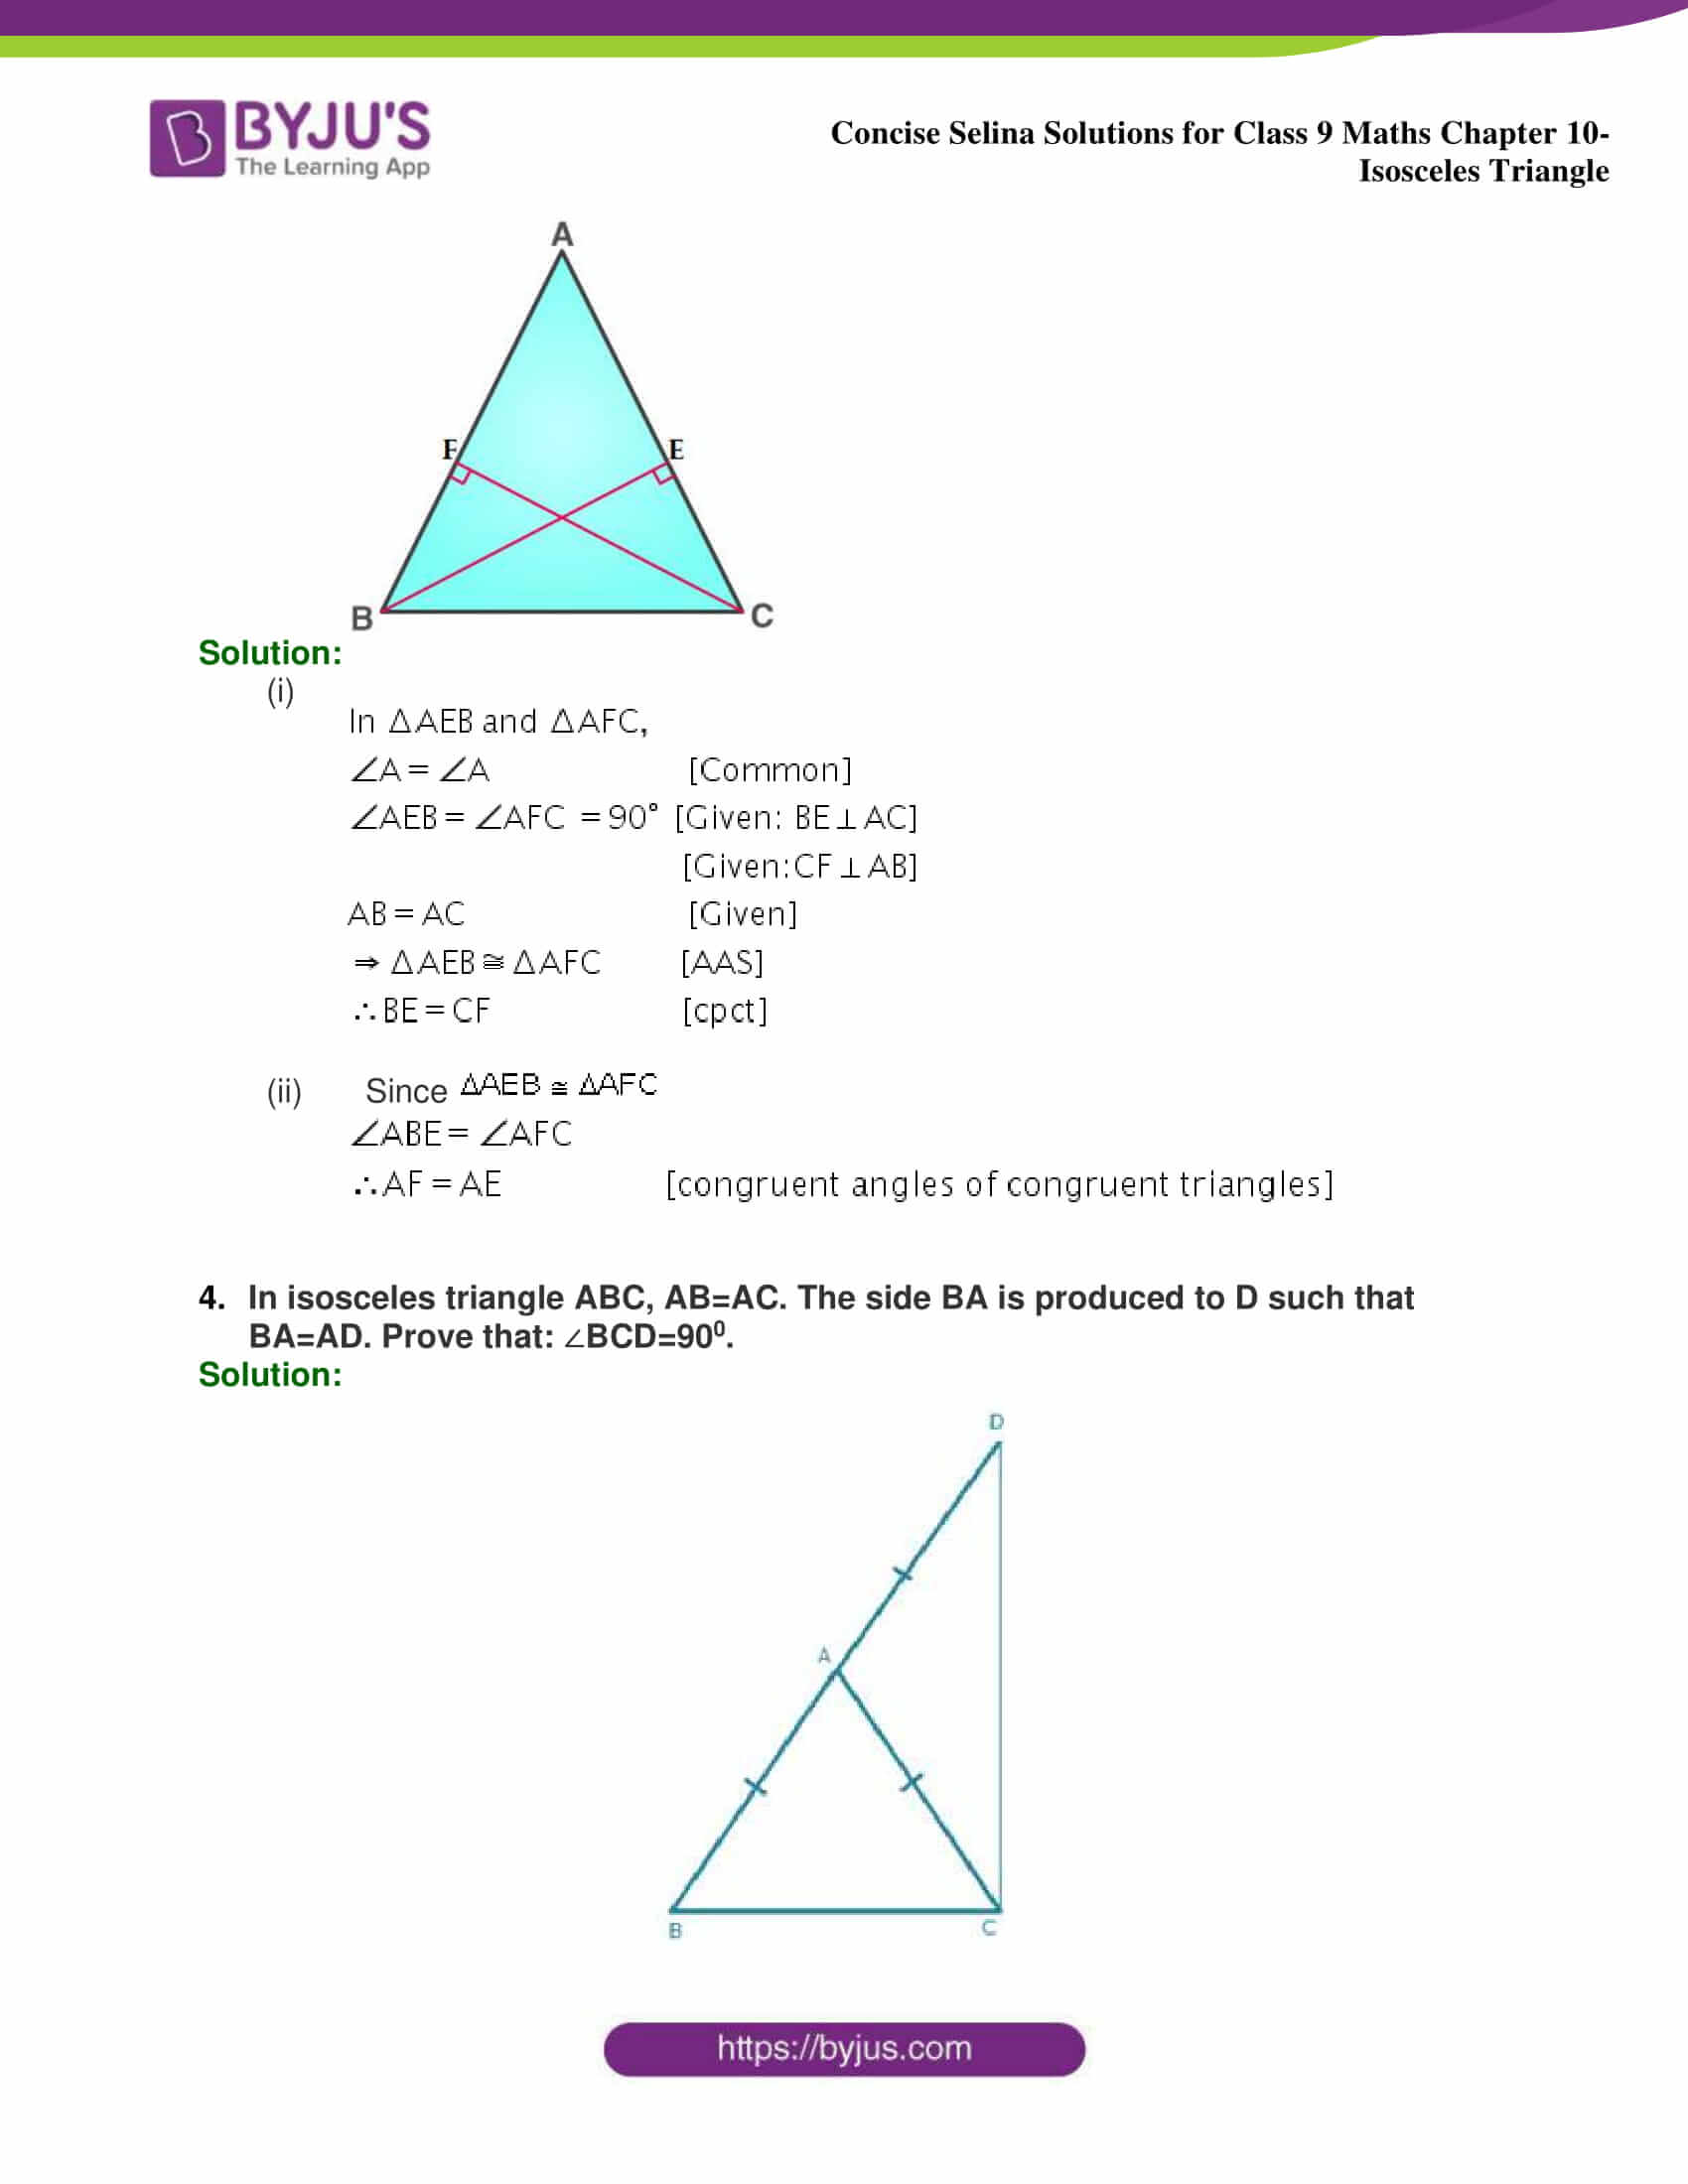 selina Solutions for Class 9 Maths Chapter 10 part 24